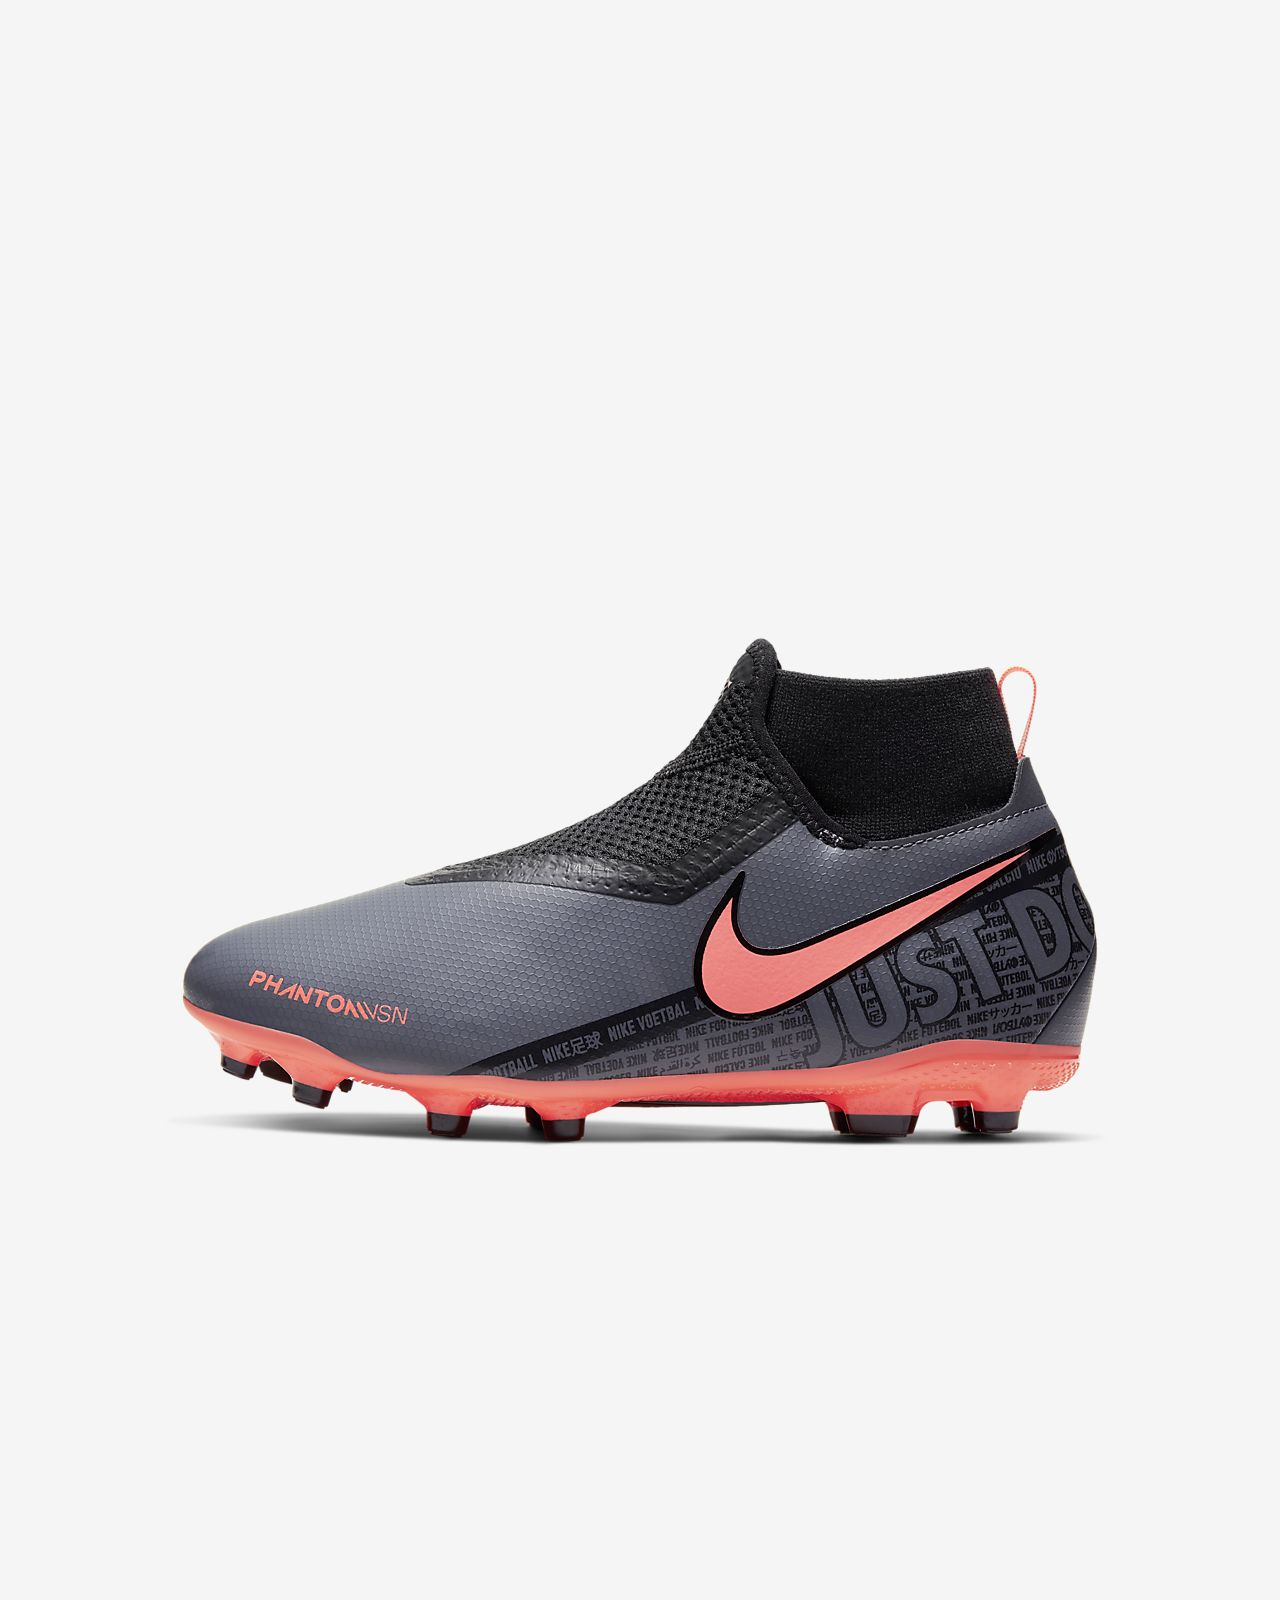 Nike Jr. Phantom Vision Academy Dynamic Fit MG 小/大童多種場地足球釘鞋